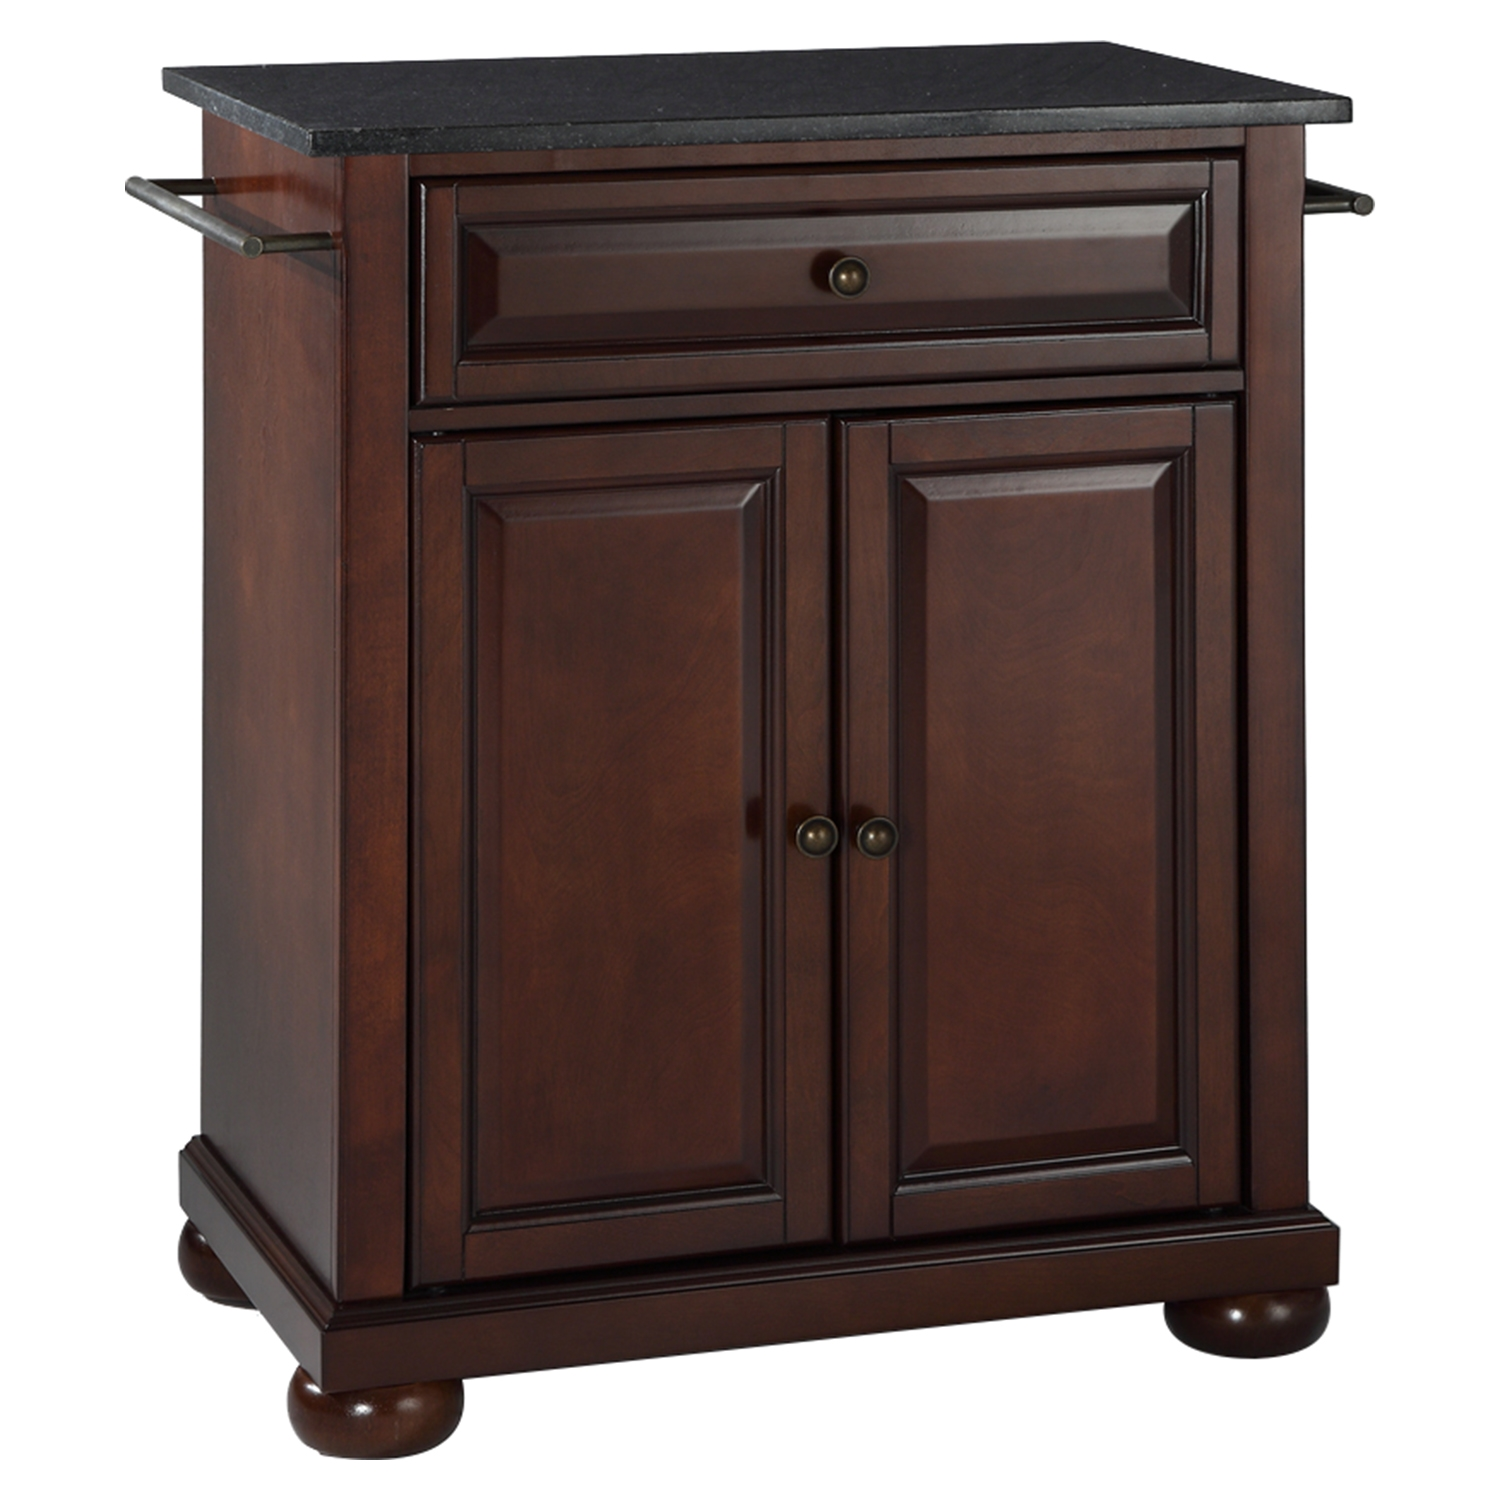 Alexandria Kitchen Island - Portable, Black Granite Top, Vintage Mahogany - CROS-KF30024AMA